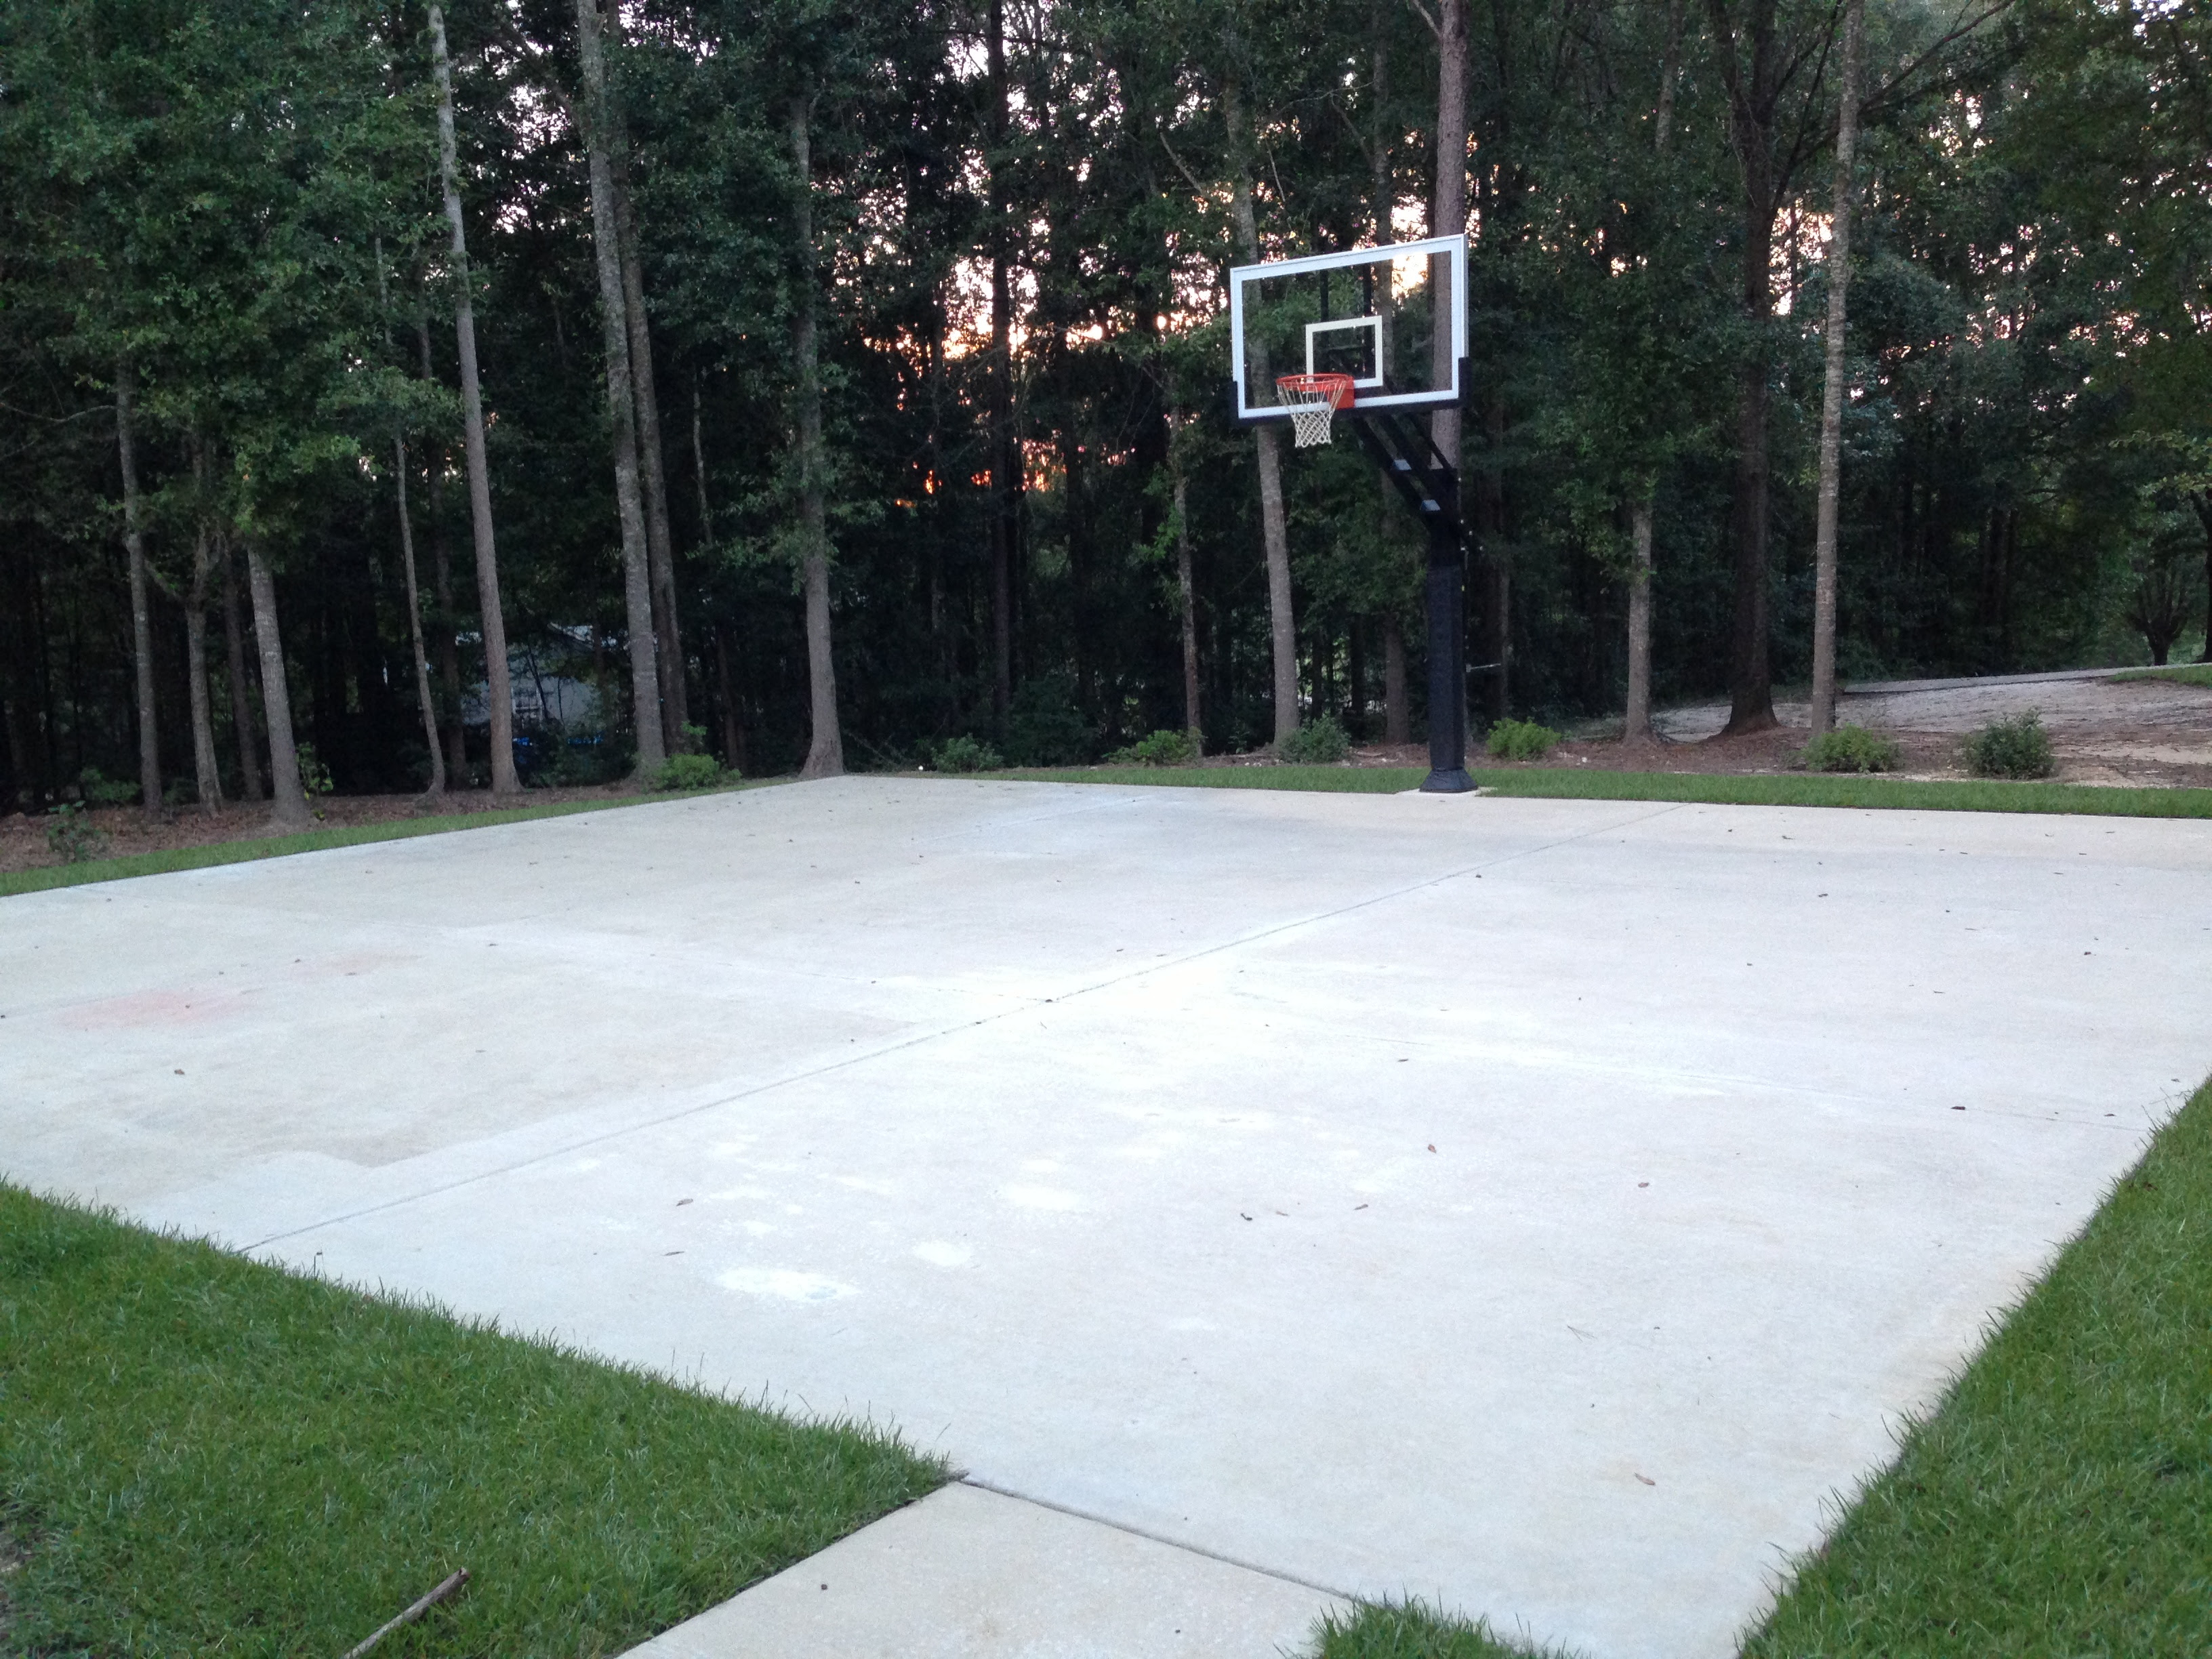 There Is His Large Concrete Slab Court And You Can See His Pro Dunk